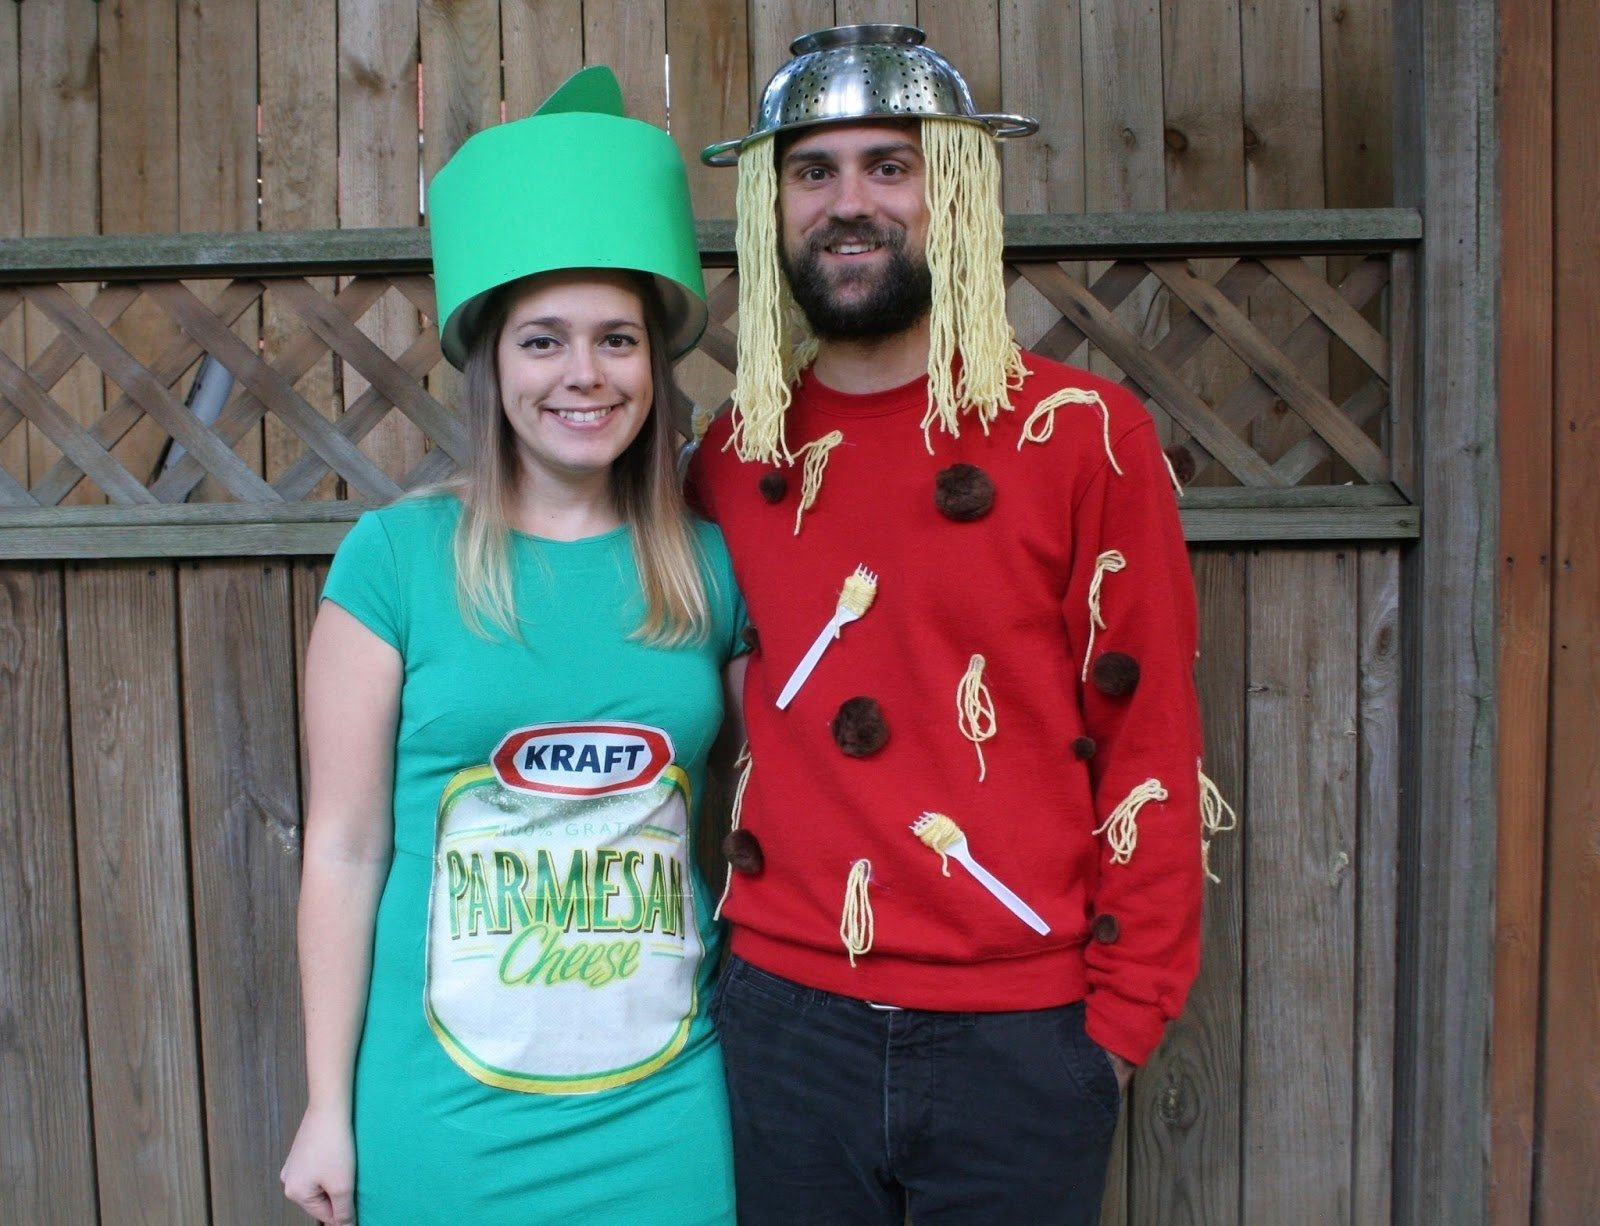 10 Pretty Cute Couple Halloween Costume Ideas our halloween costumes spaghetti parmesan cheese the surznick 15 2021